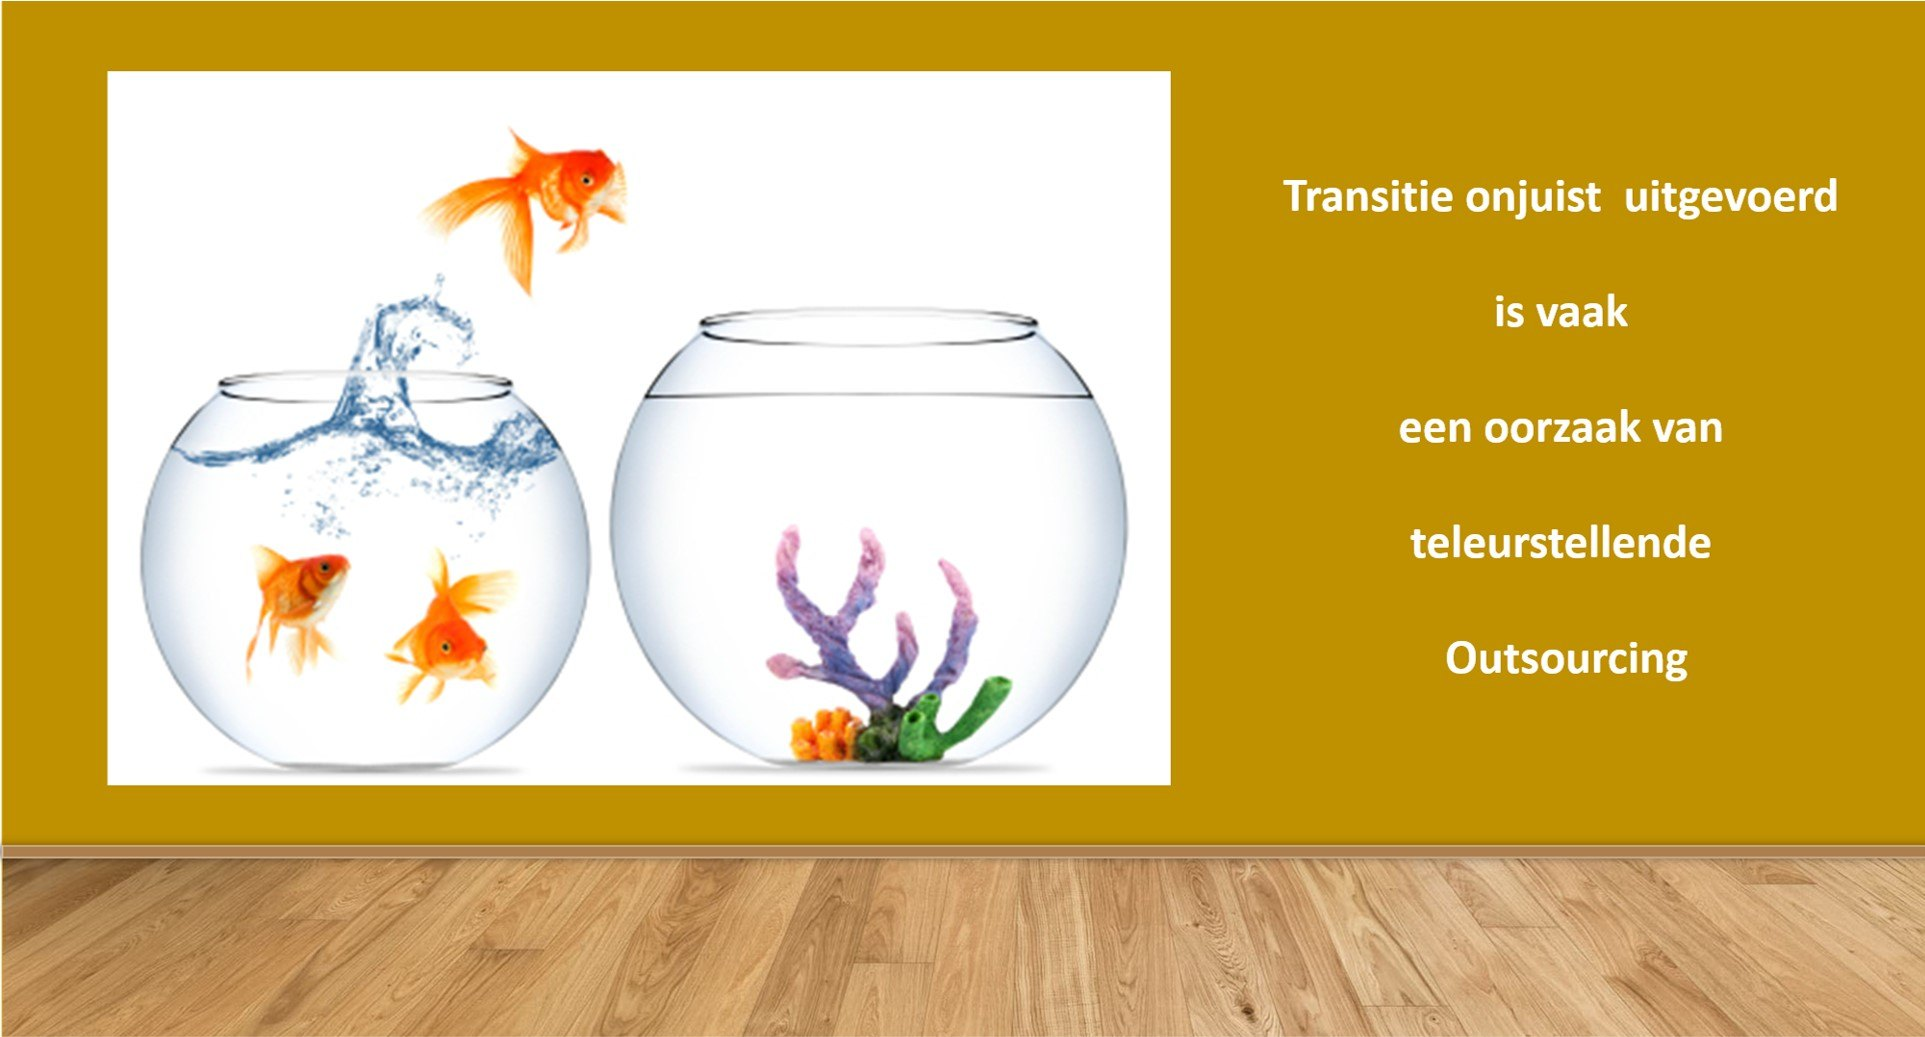 Transitiemanagement bij Outsourcing